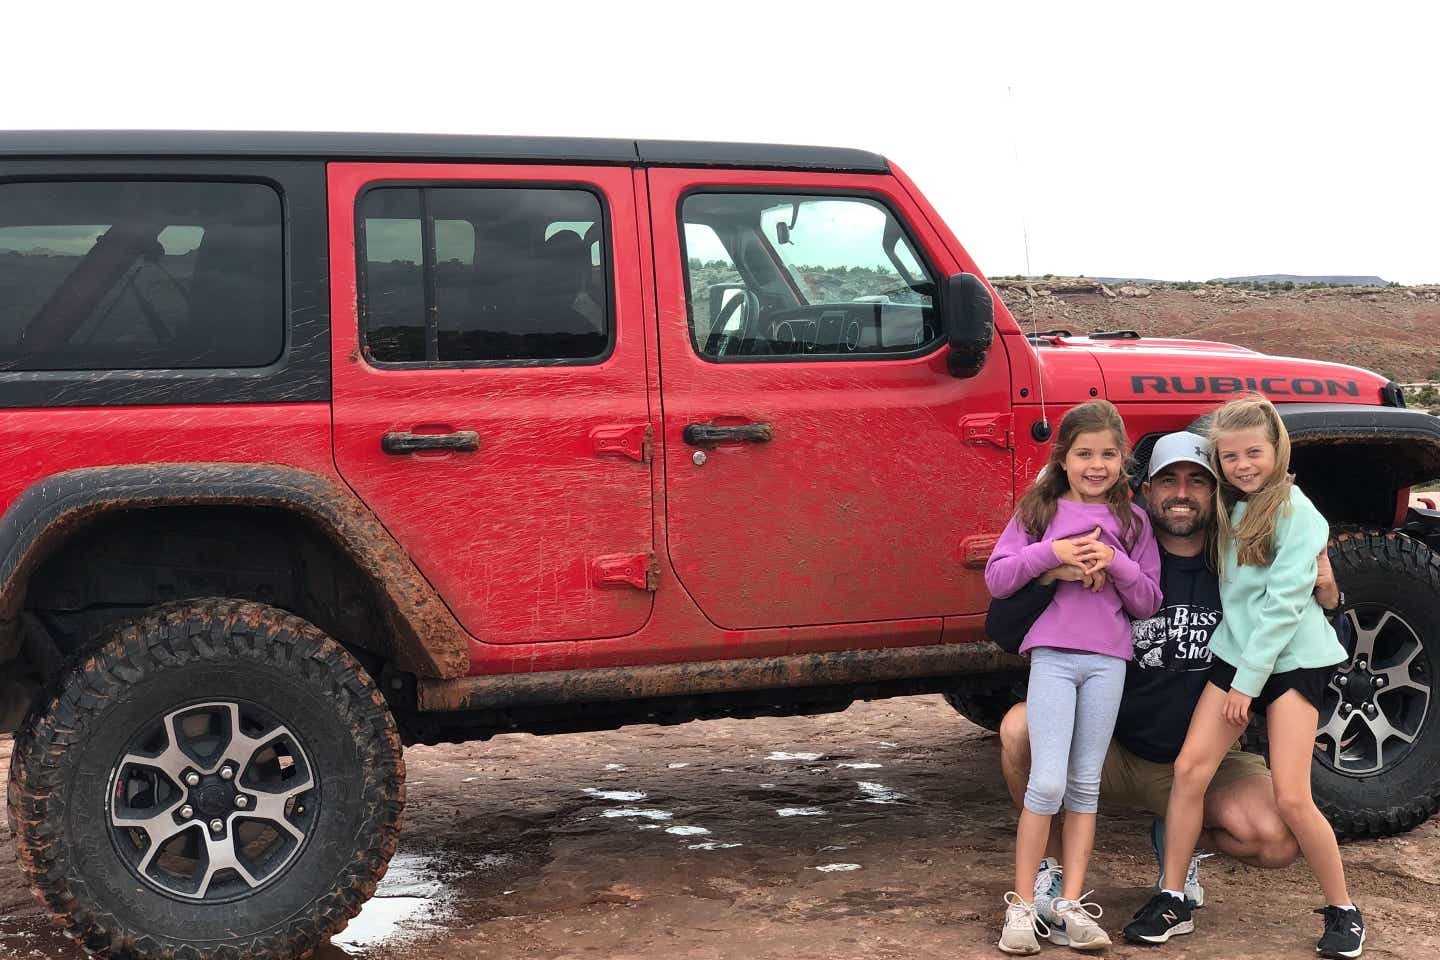 Josh (middle) and daughters (left and right) pose in front of their red Jeep Rubicon for some off-roading adventures.